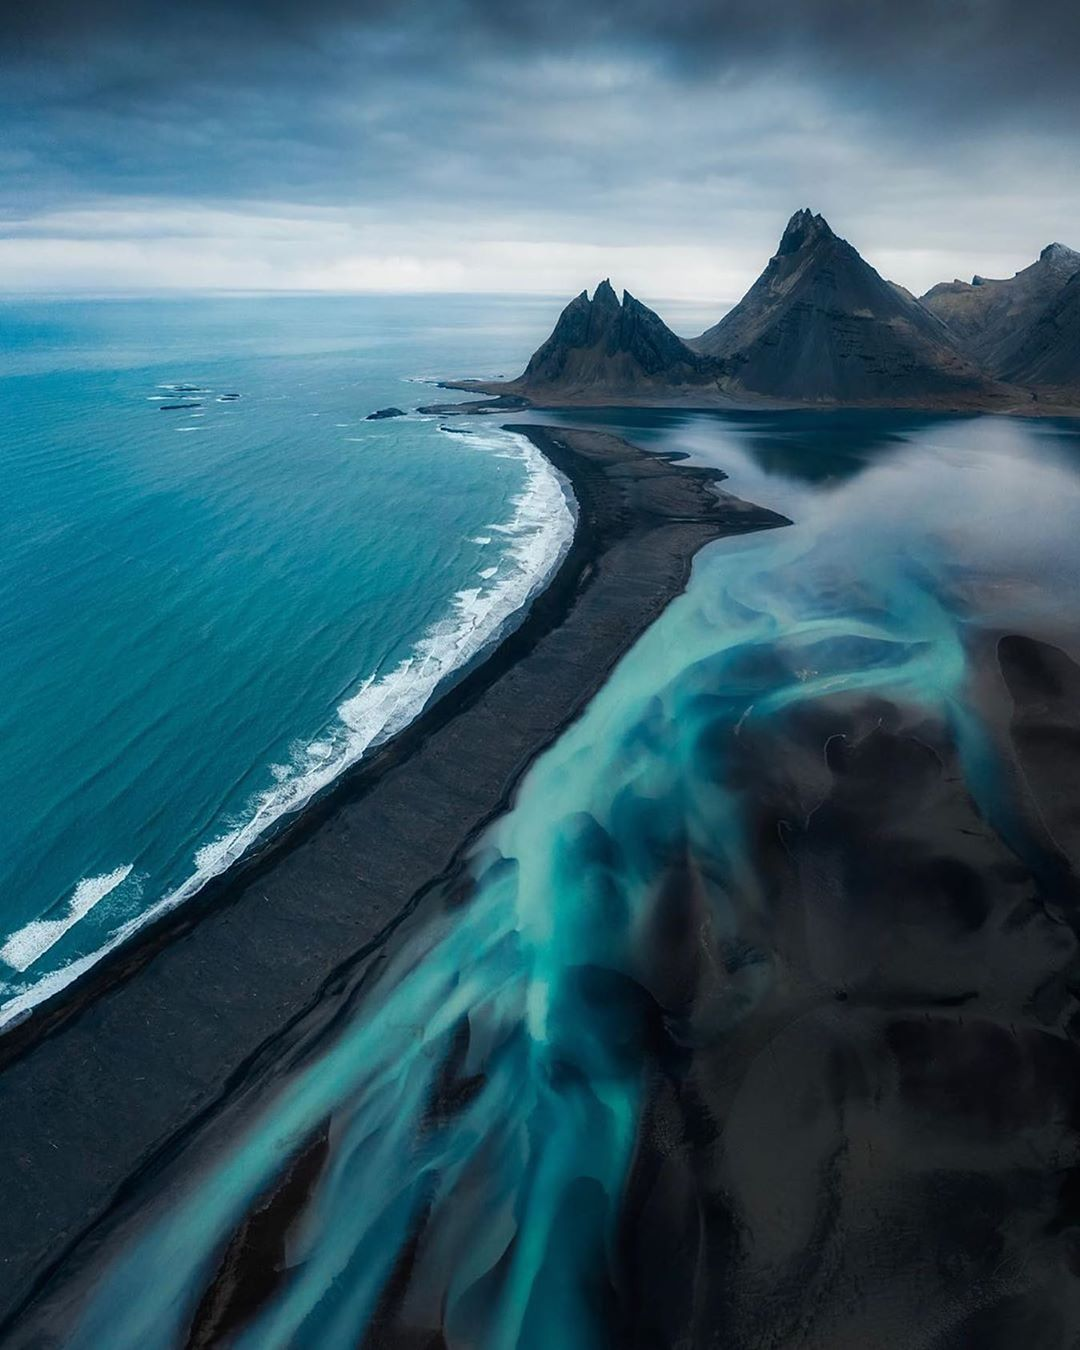 Glacial rivers meet the black sand beaches and peaks of Iceland